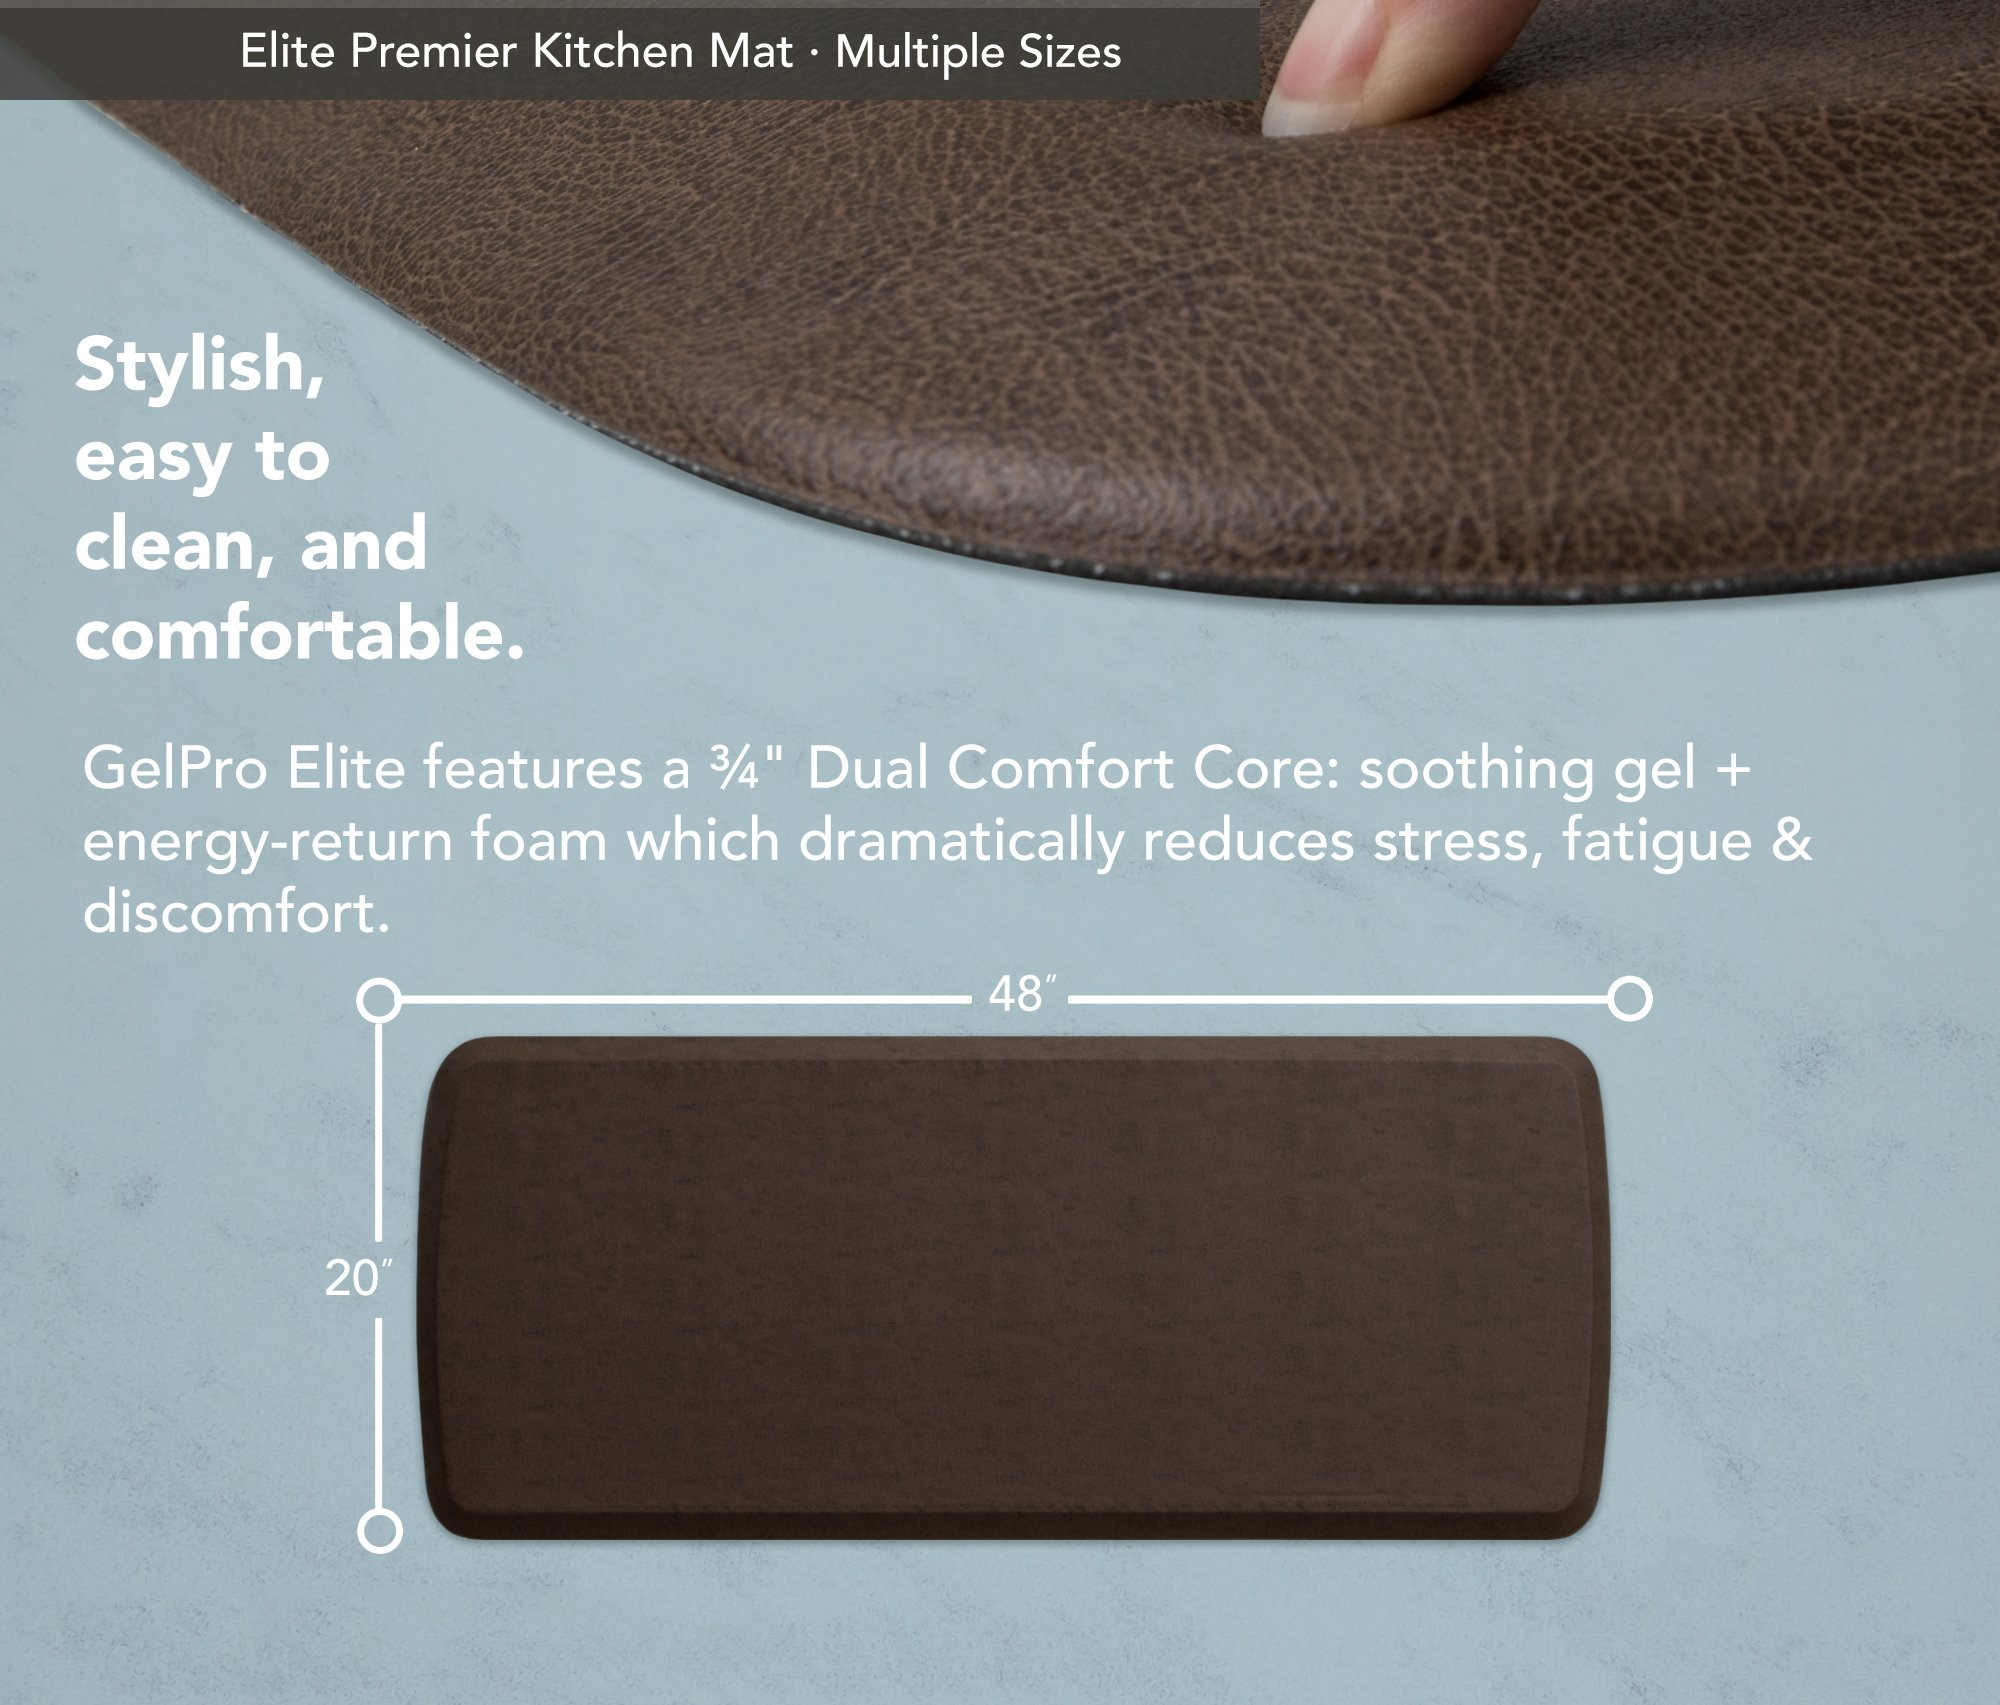 """GelPro Elite Premier Anti-Fatigue Kitchen Comfort Floor Mat, 20x48"""", Vintage Leather Rustic Brown Stain Resistant Surface with Therapeutic Gel and Energy-return Foam for Health and Wellness by GelPro (Image #3)"""